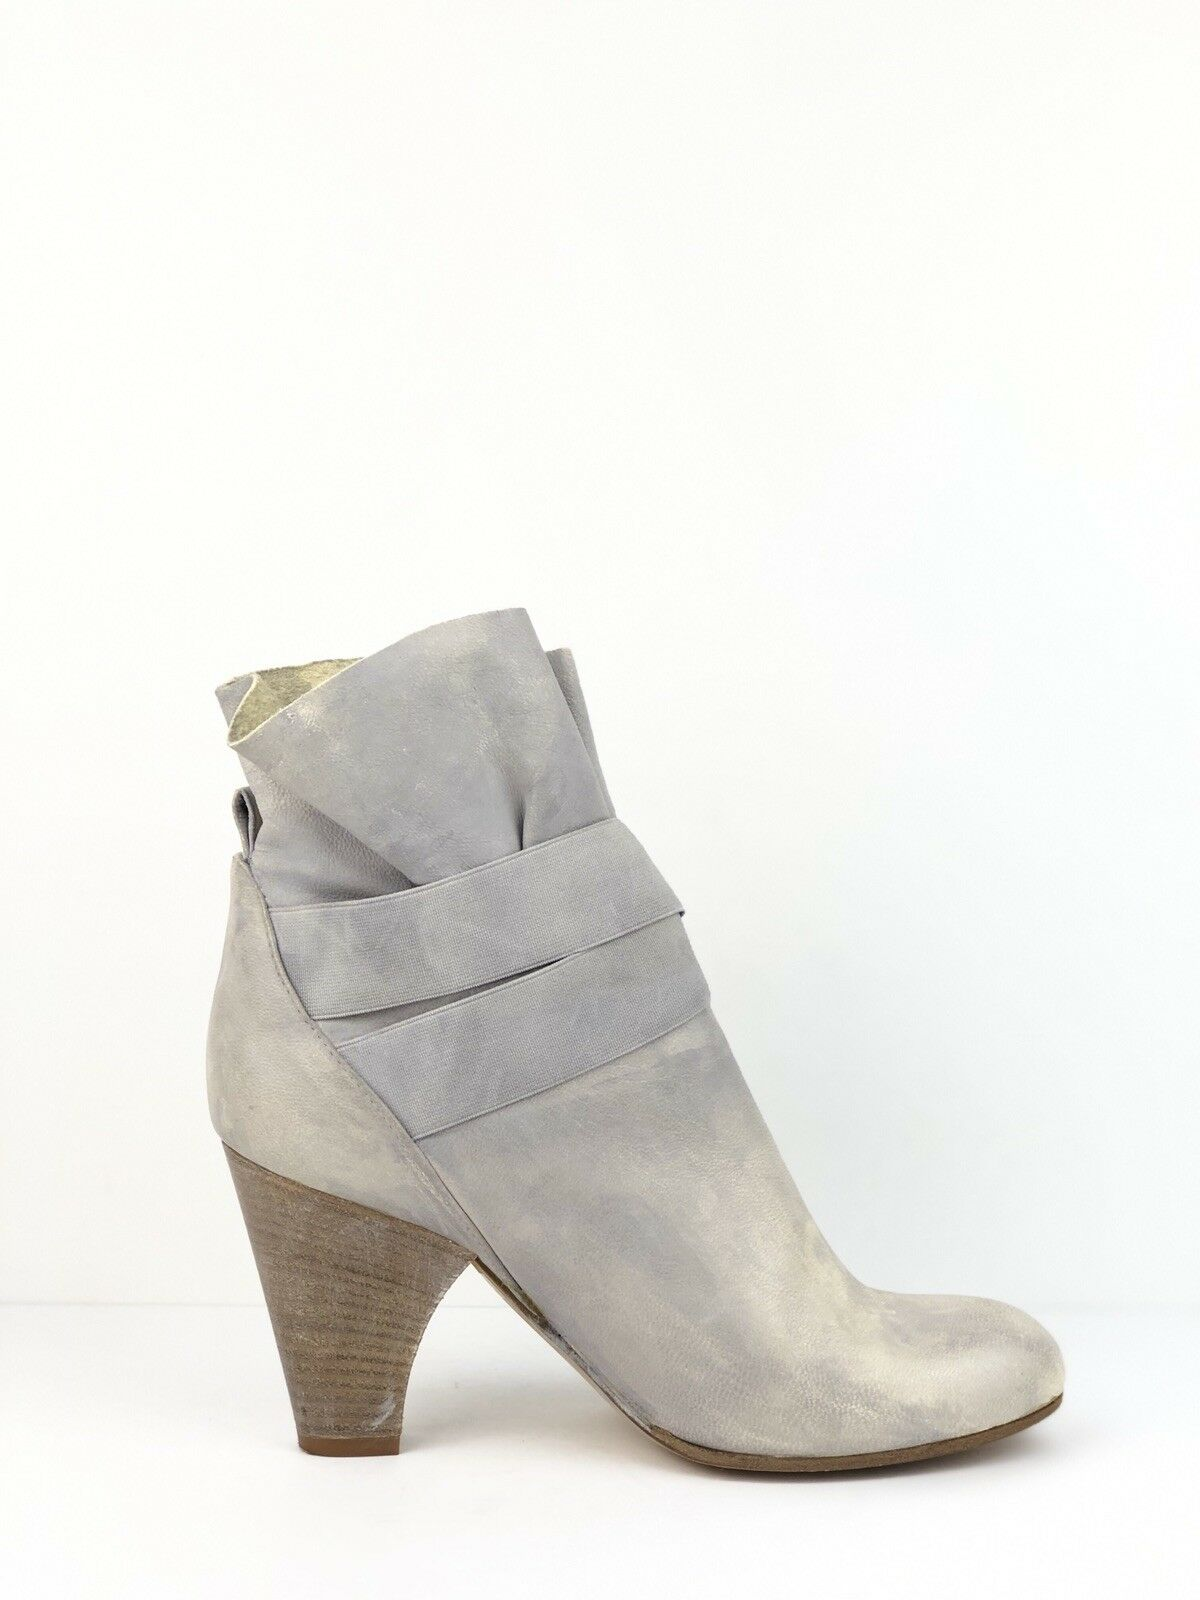 Latitude Femme Boots ITALY Ankle Booties Distressed Leather Sz 37.5 US 7.5 EUC